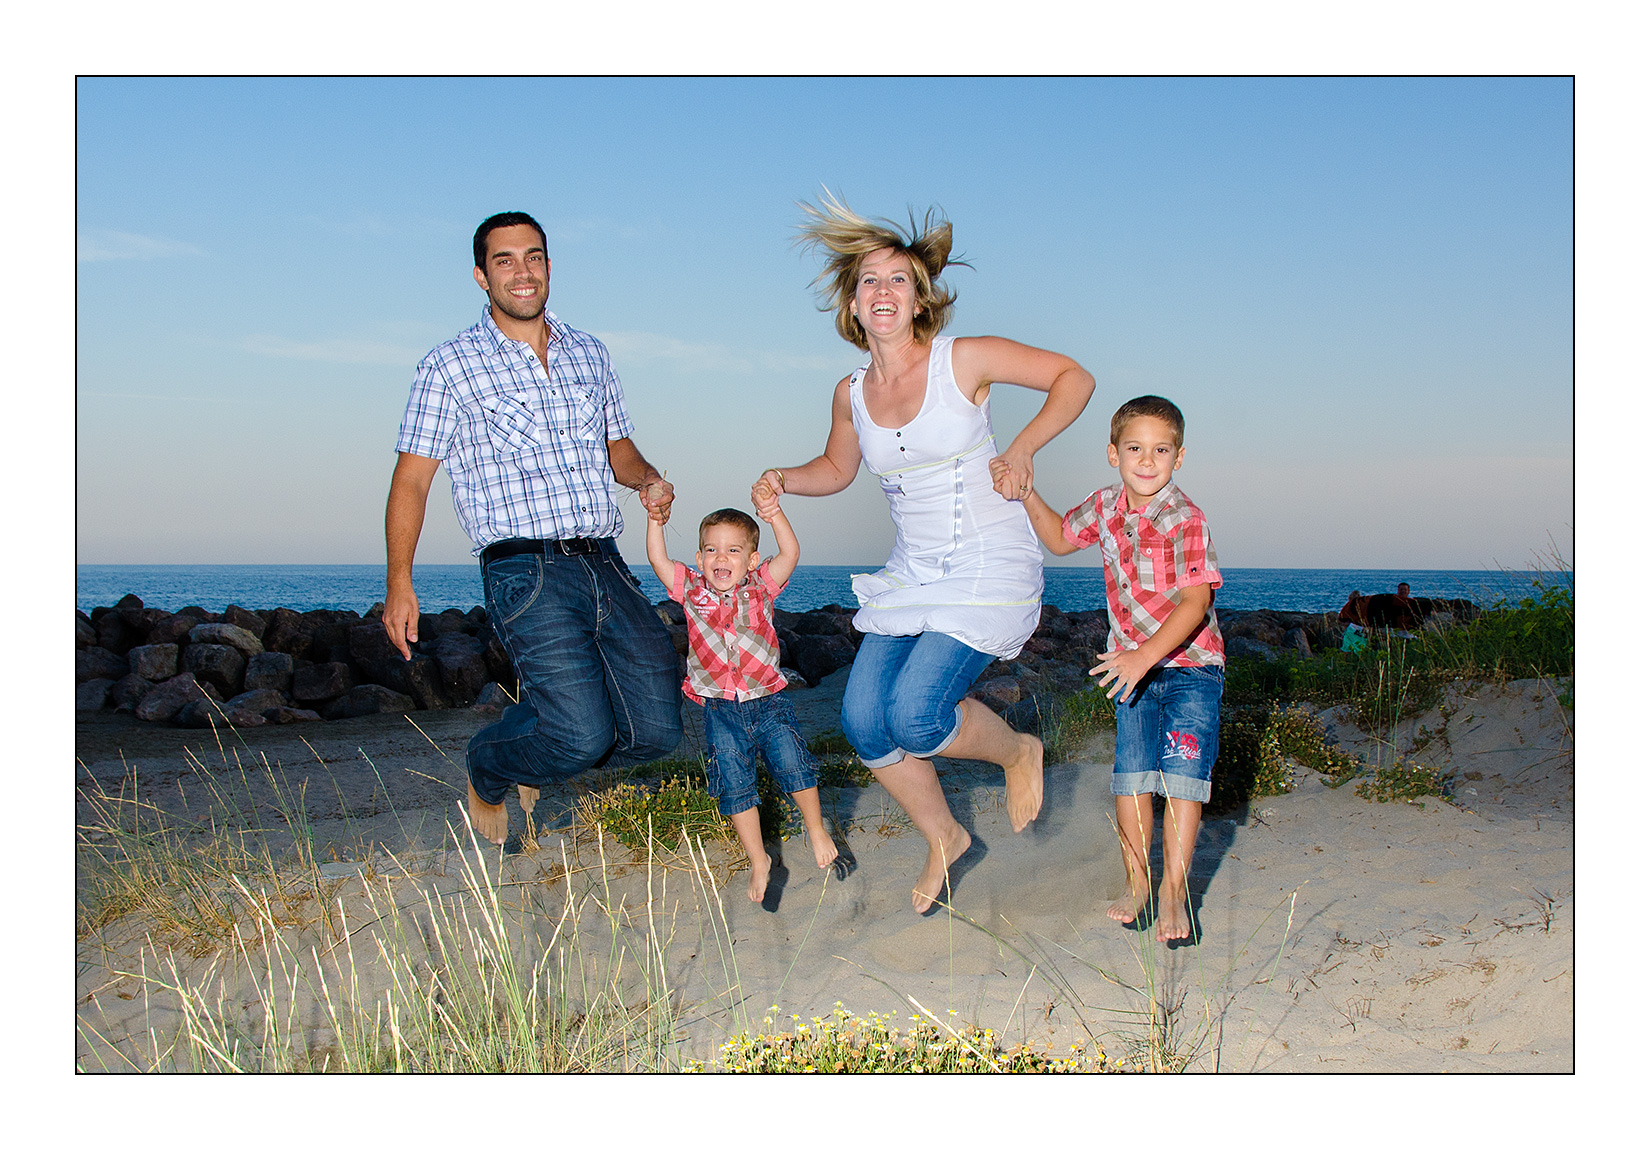 photo-jump-plage-famille-frere-couple-saut-fun